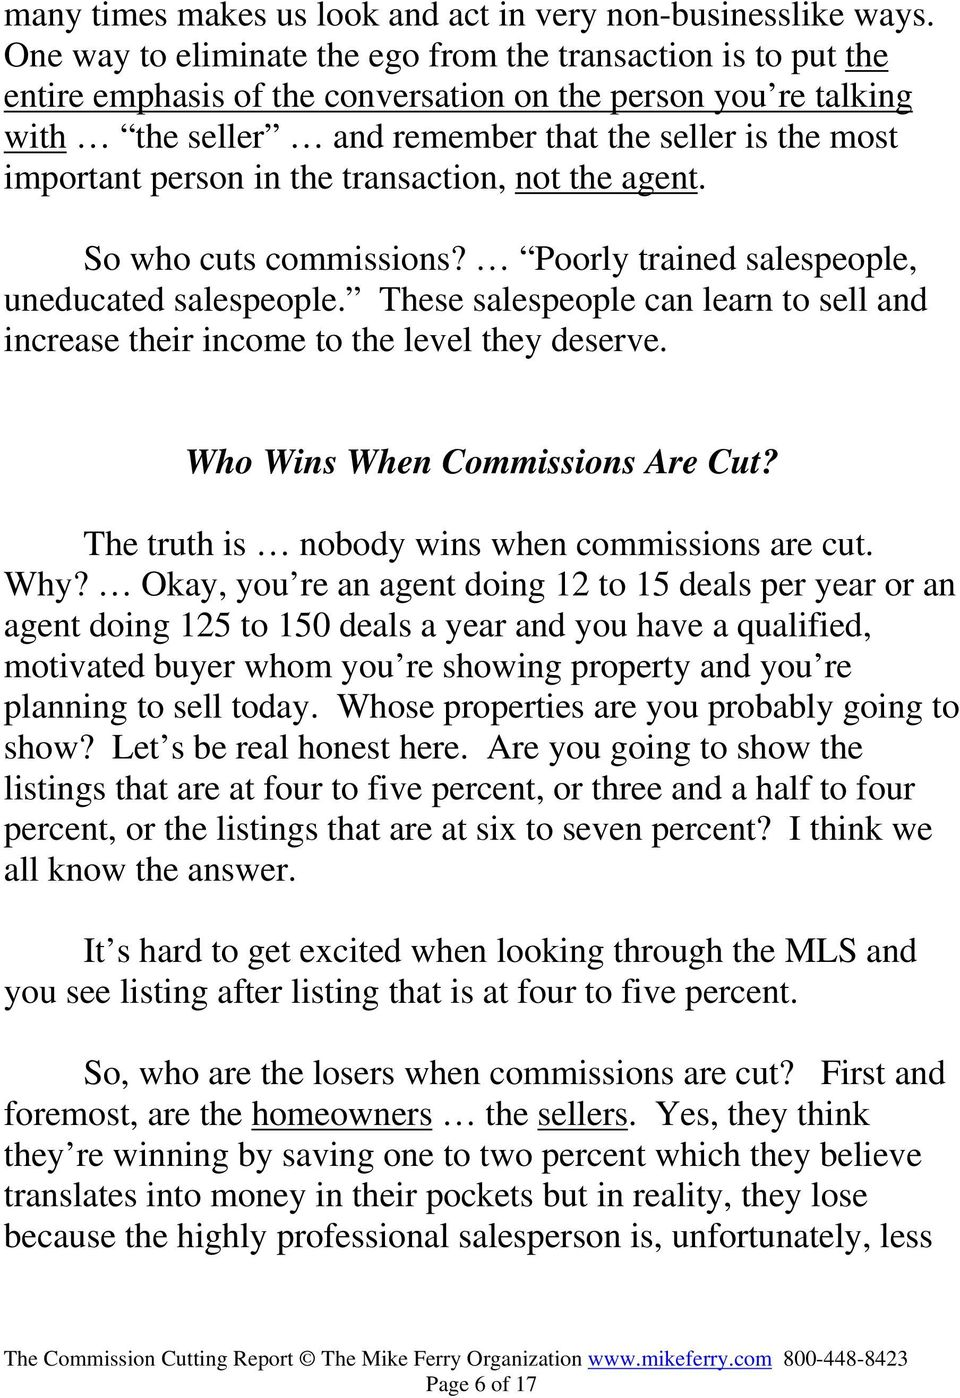 person in the transaction, not the agent. So who cuts commissions? Poorly trained salespeople, uneducated salespeople.